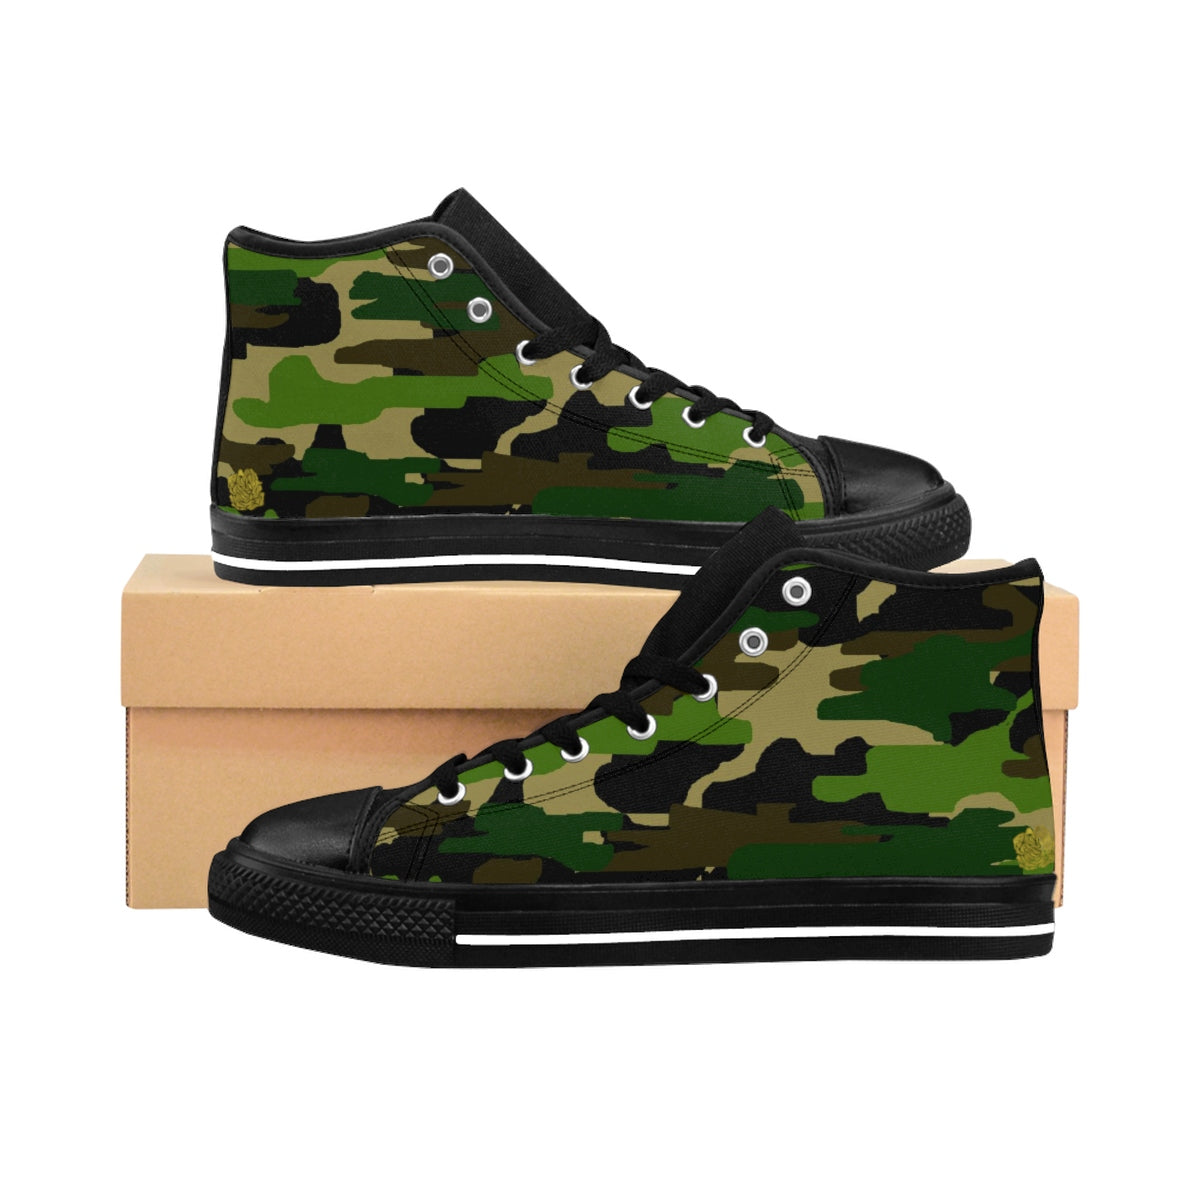 Camouflage Green Military Army Print Pattern Men's High Top Sneakers (US Size 6-14)-Men's High Top Sneakers-Black-US 9-Heidi Kimura Art LLC Camouflage Men's High Top Sneakers, Camouflage Green Military Army Print Pattern Designer Shoes - Men's High Top Sneakers (US Size 6-14)